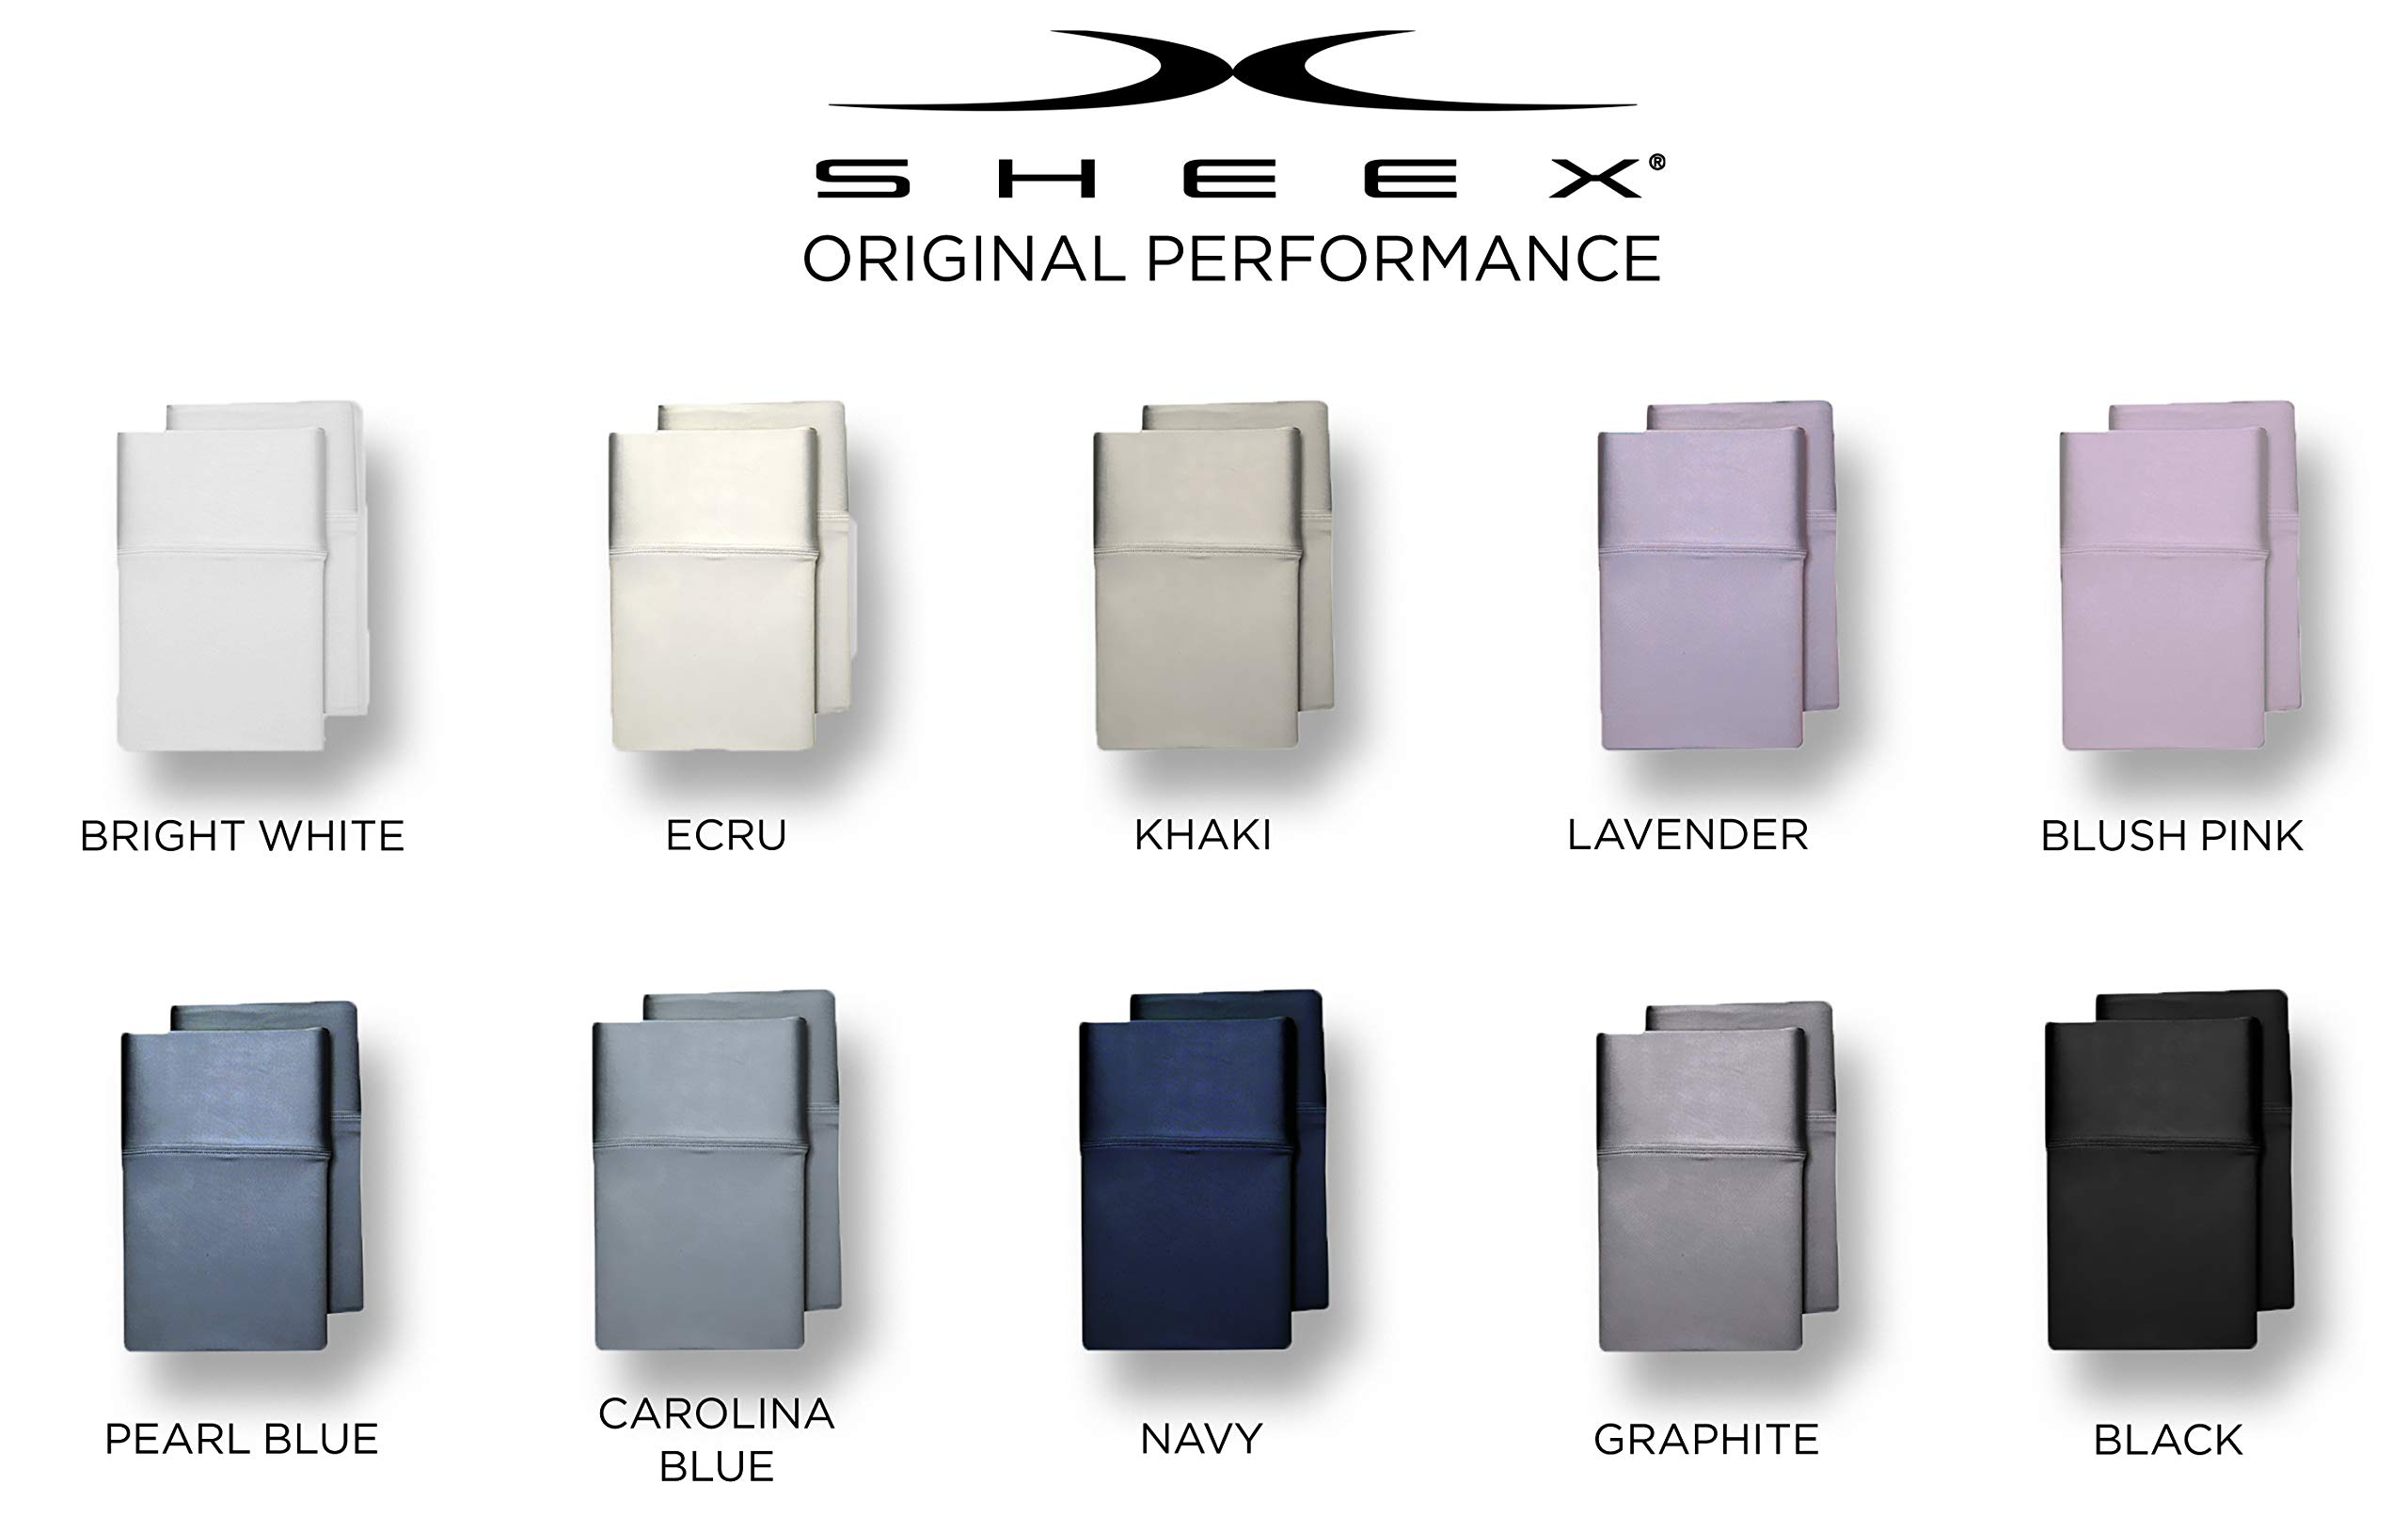 SHEEX - Original Performance Pillowcases (Set of 2), Ultra-Soft Fabric Transfers Body Heat and Breathes Better Than Traditional Cotton, Graphite (King)